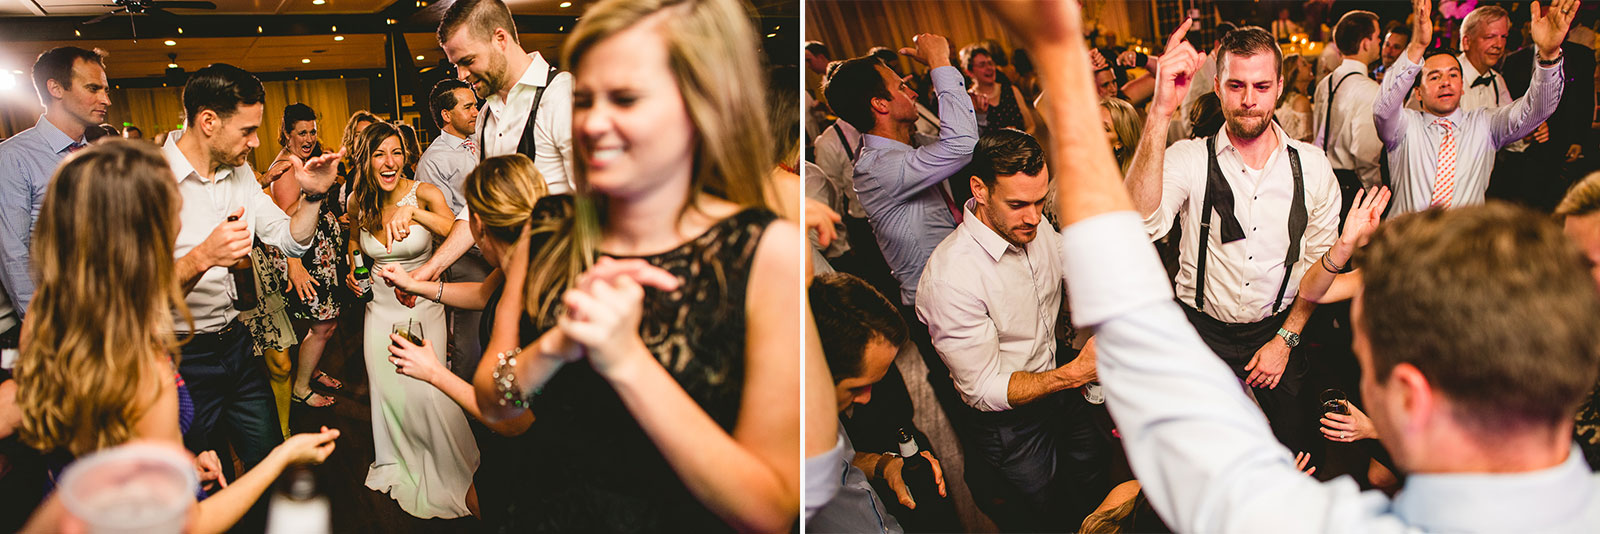 71 cleveland wedding photos - Club of Hillbrook Wedding // Jenna + Ben